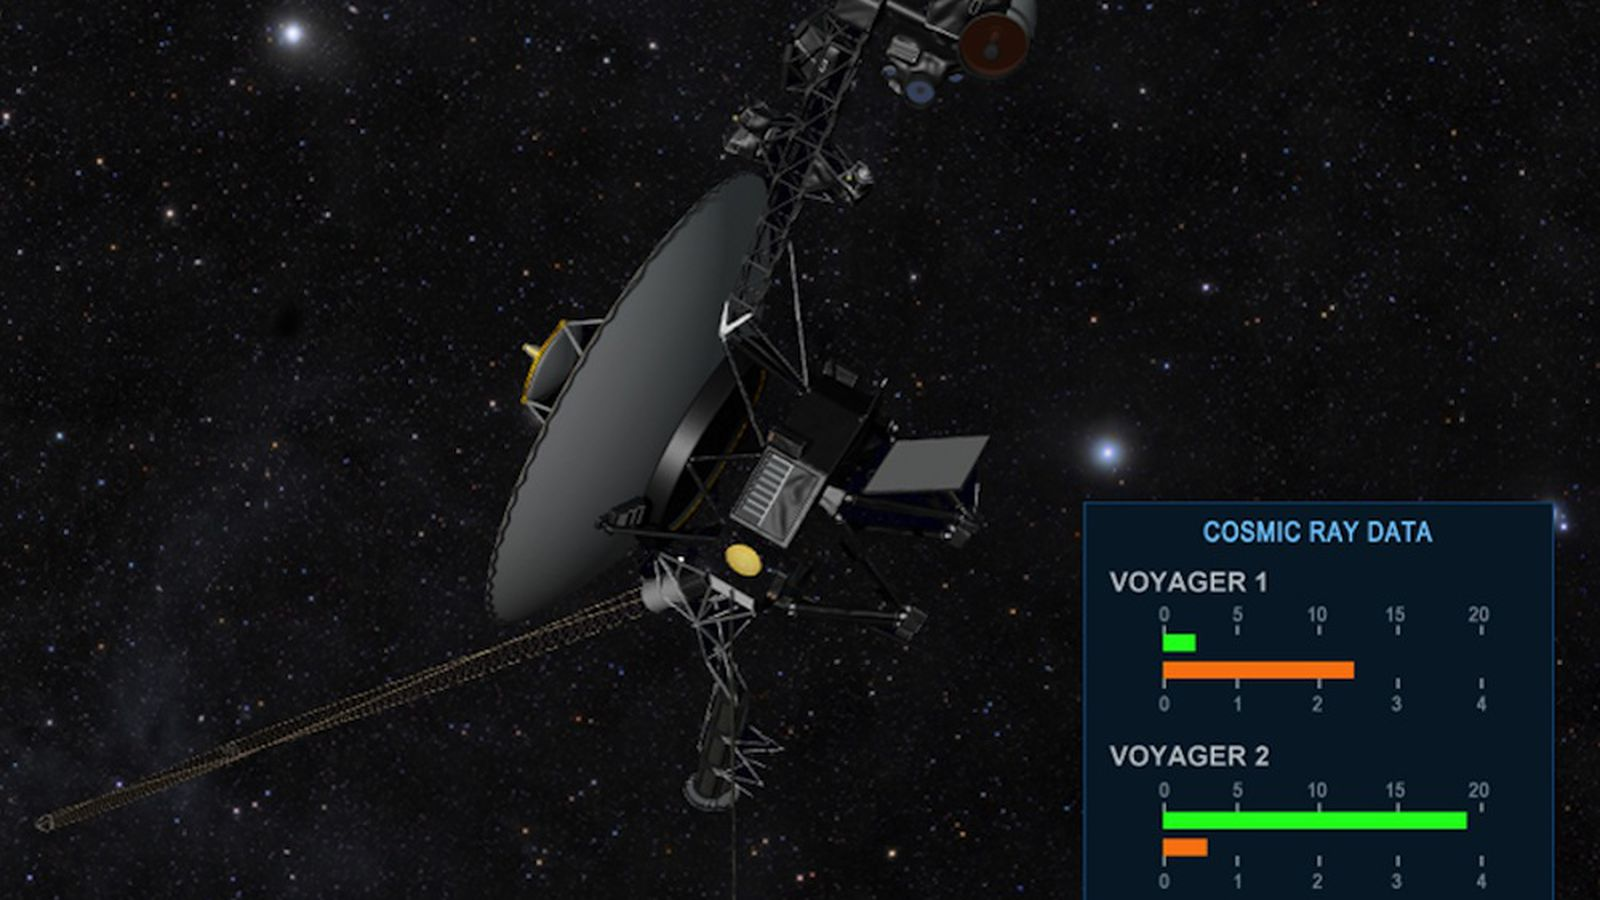 nasa voyager leaving the solar system - photo #12